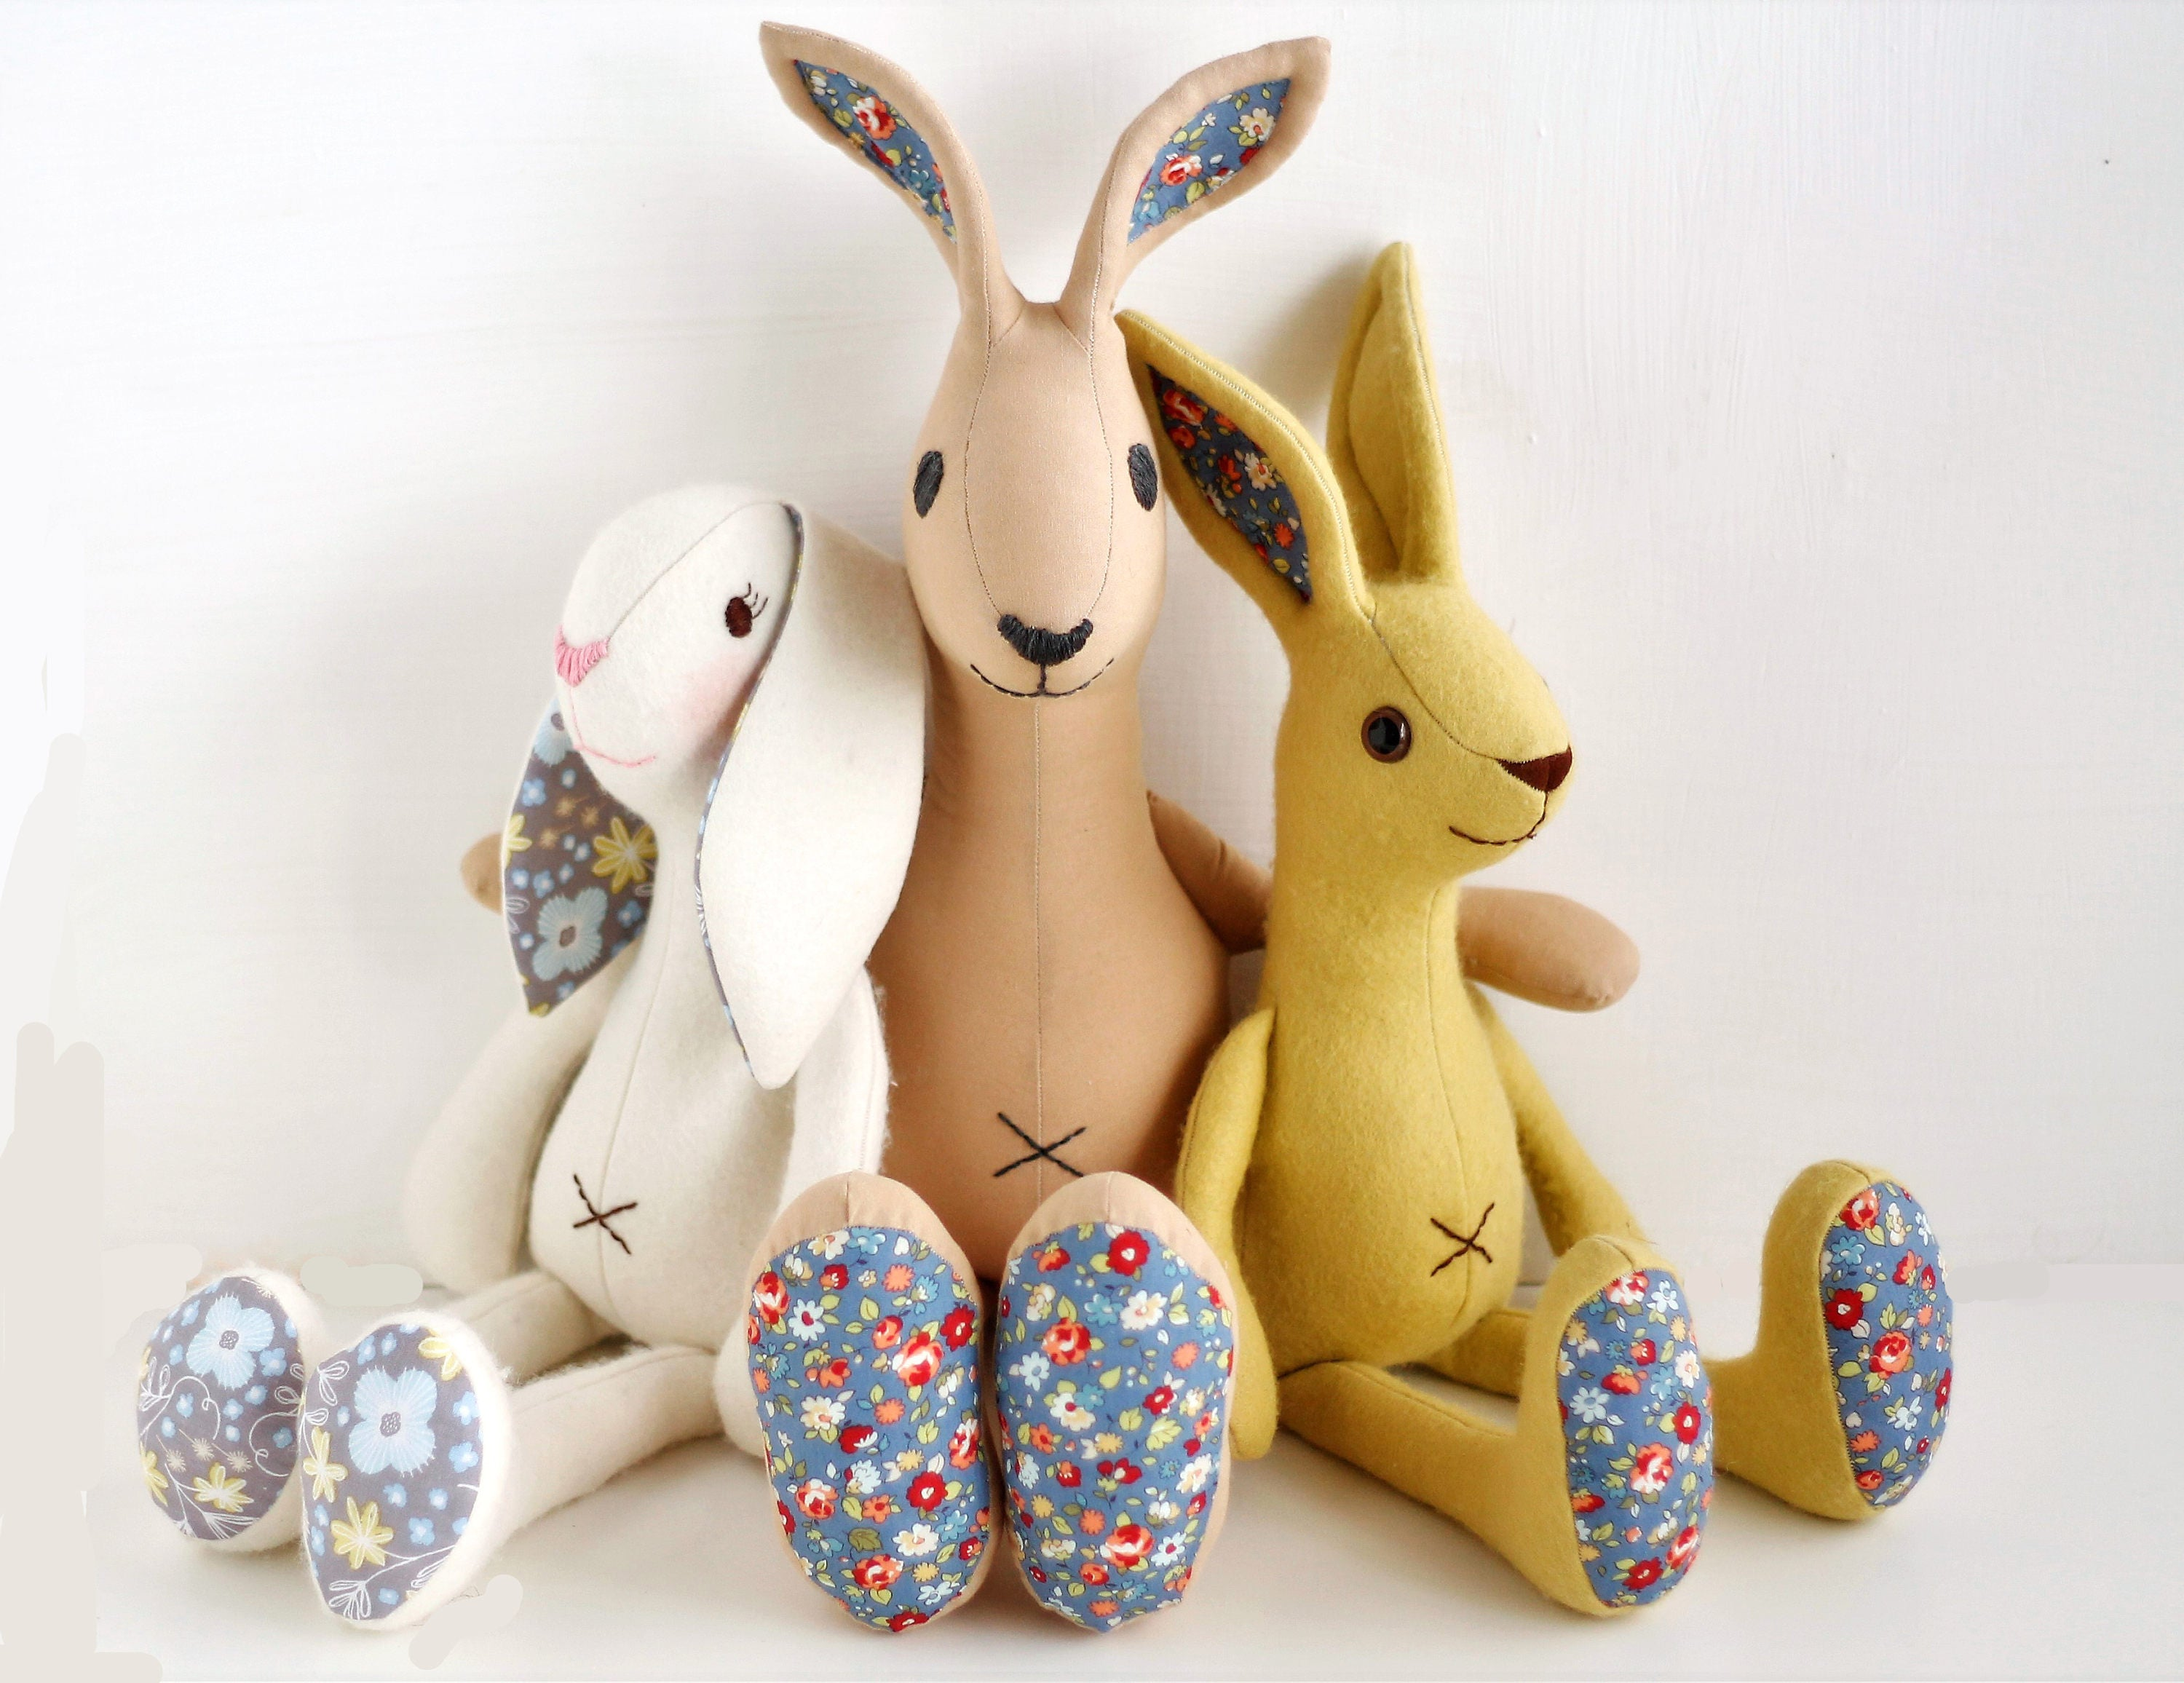 Bunny rabbit sewing pattern bundle from left to right floppy ear bunny rabbit sewing pattern bundle from left to right floppy ear rabbit hare and jackrabbit pdf files for instant download jeuxipadfo Image collections